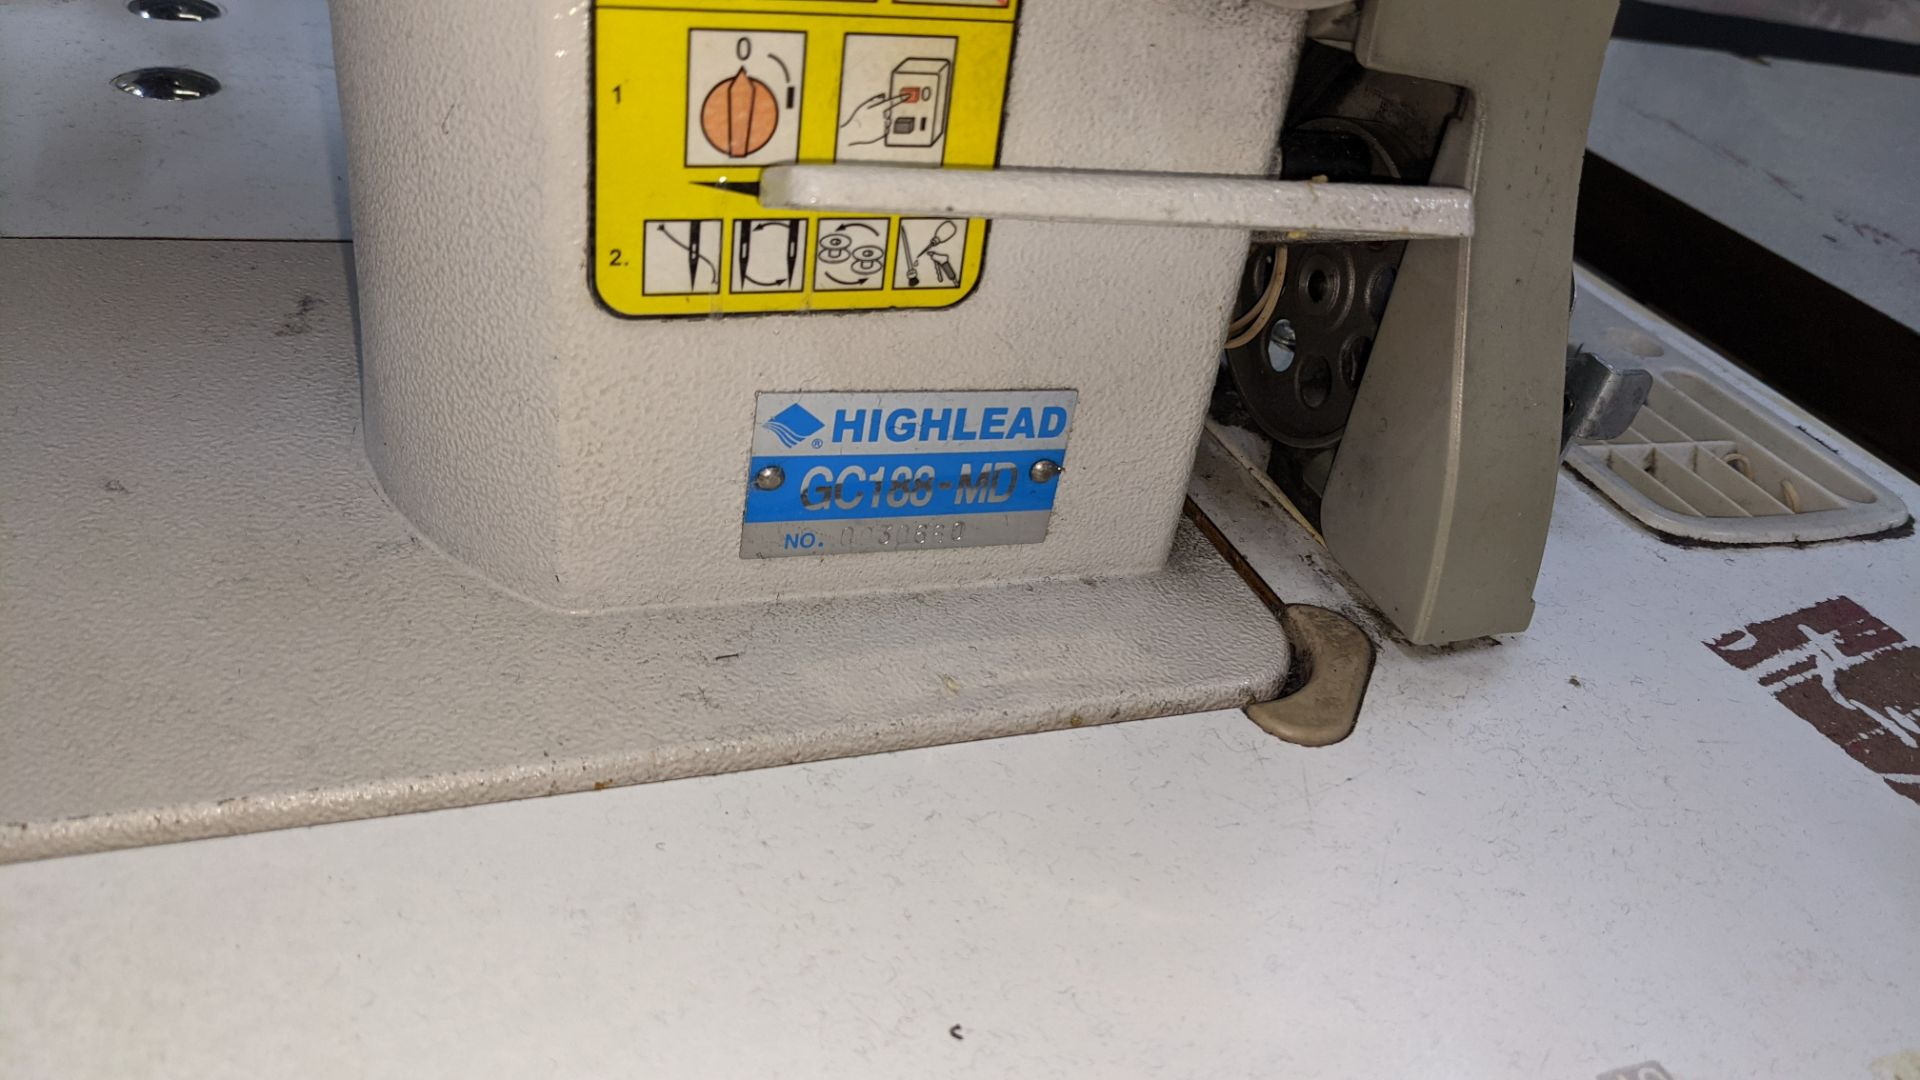 Highlead flat sewer model GC188-MD - Image 8 of 17